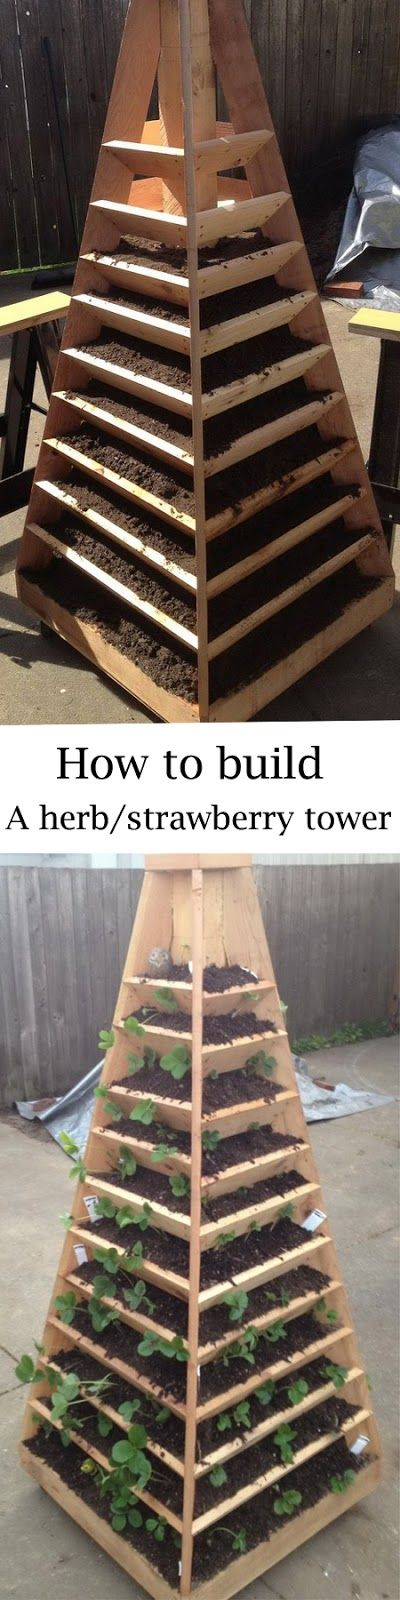 How to build a herb/strawberry tower.